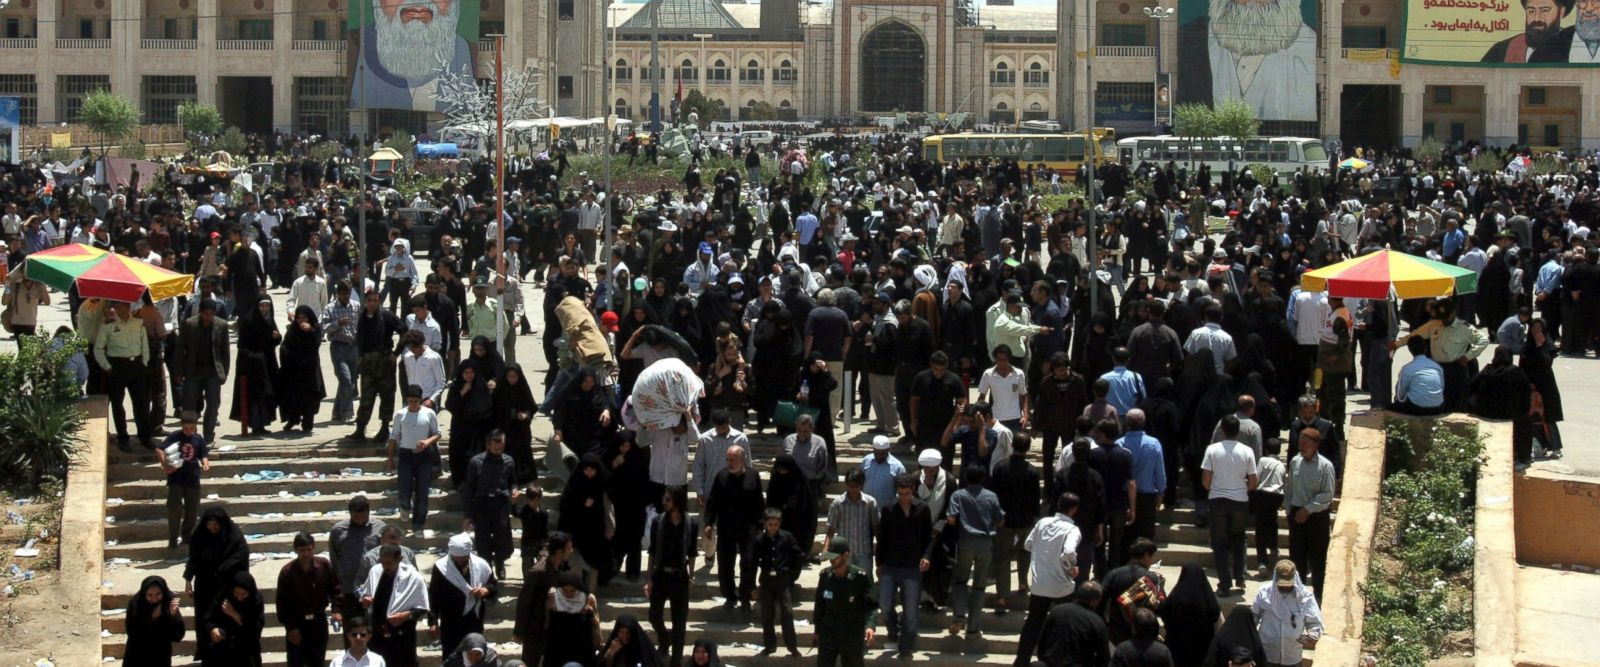 7 killed as armed men storm Iranian parliament, Khomeini's shrine